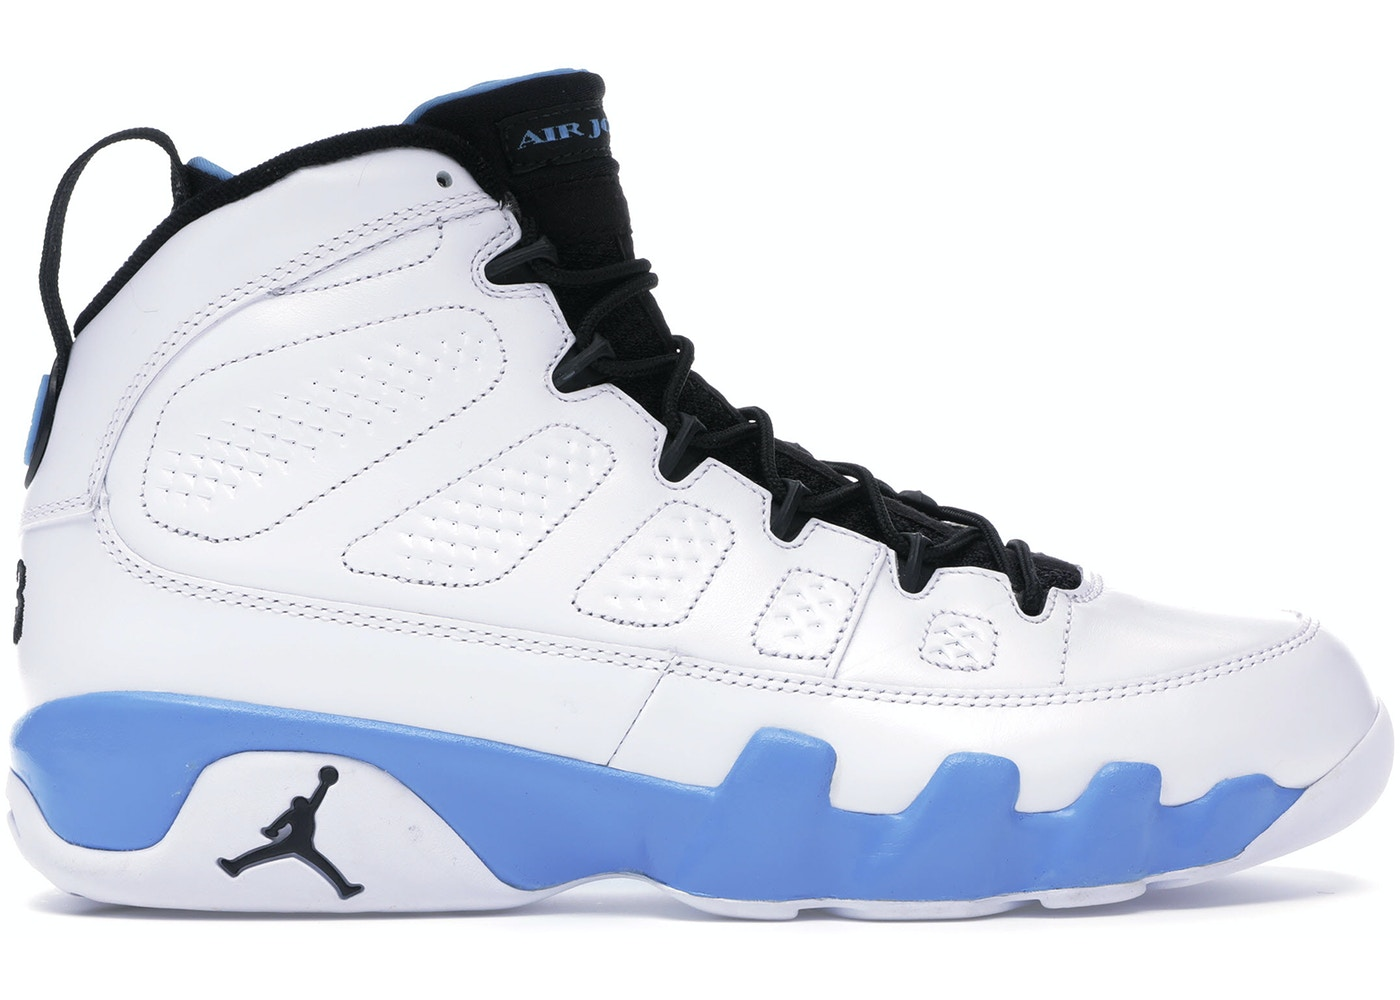 cheap for discount 4339e c2a70 Buy Air Jordan 9 Shoes   Deadstock Sneakers